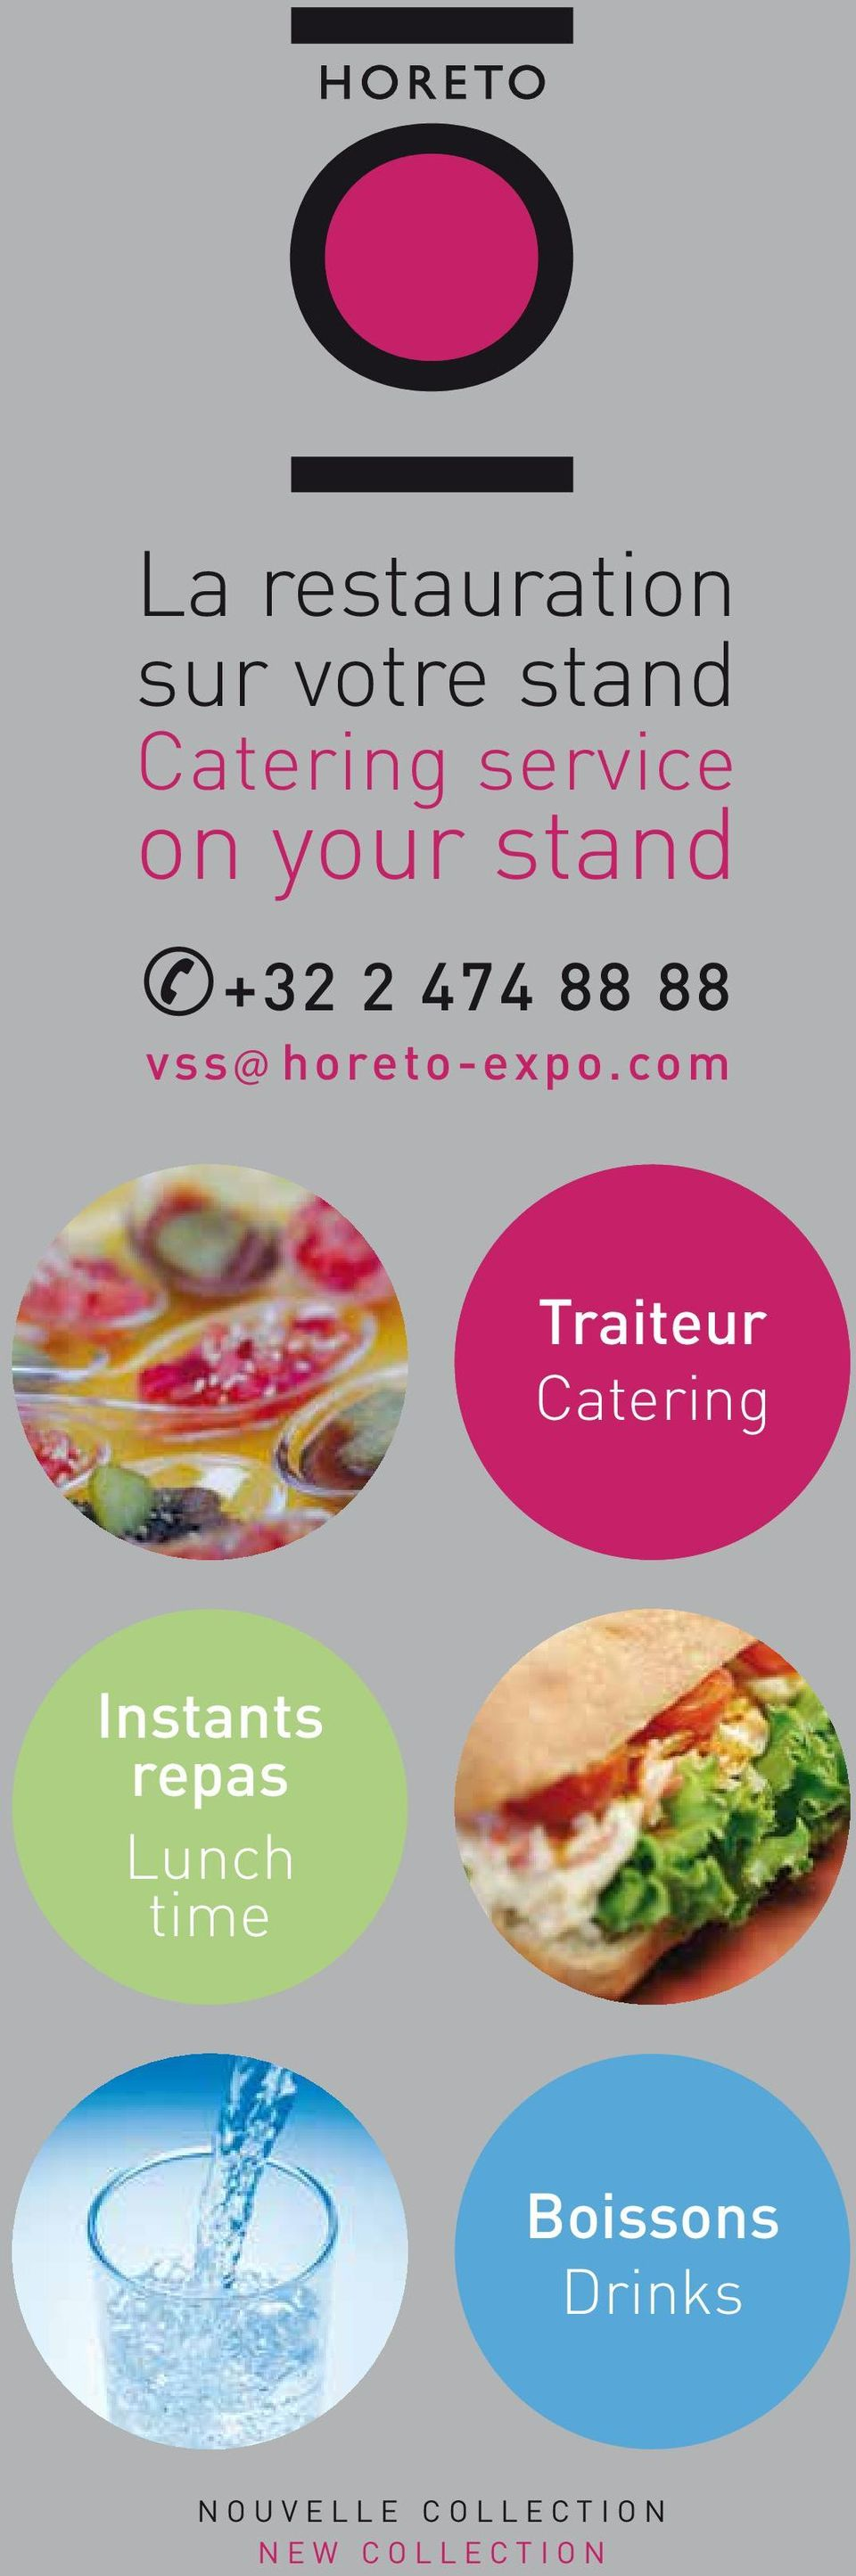 com Traiteur Catering Instants repas Lunch time